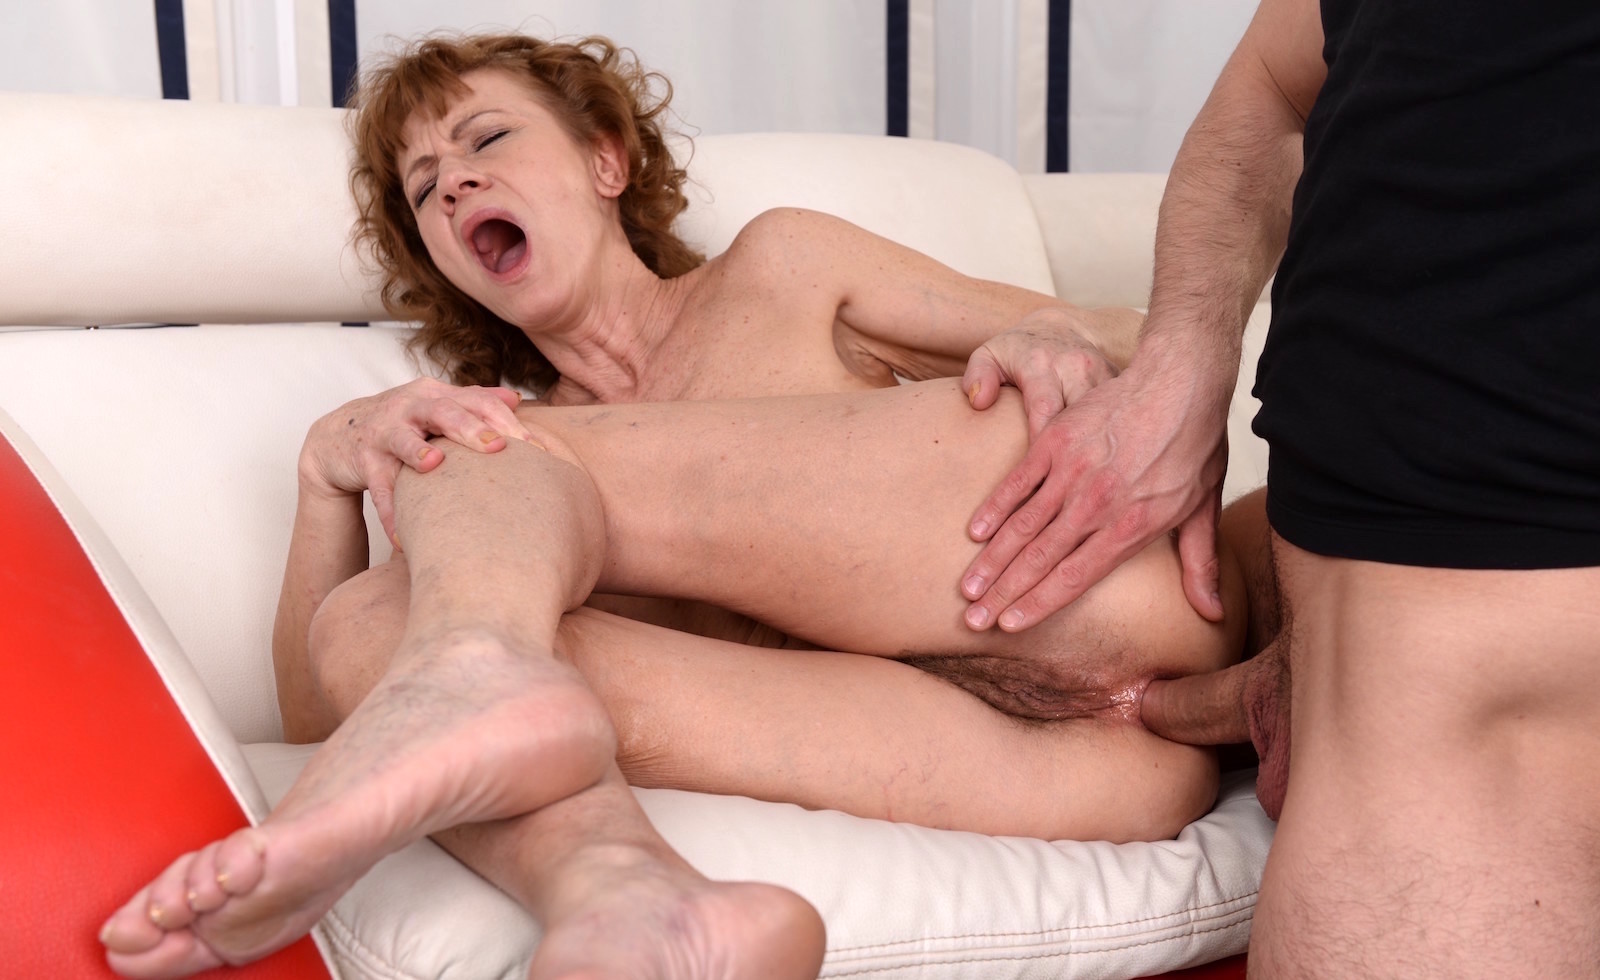 Painful Anal Porn Best Pics, Painful Anal New Pics